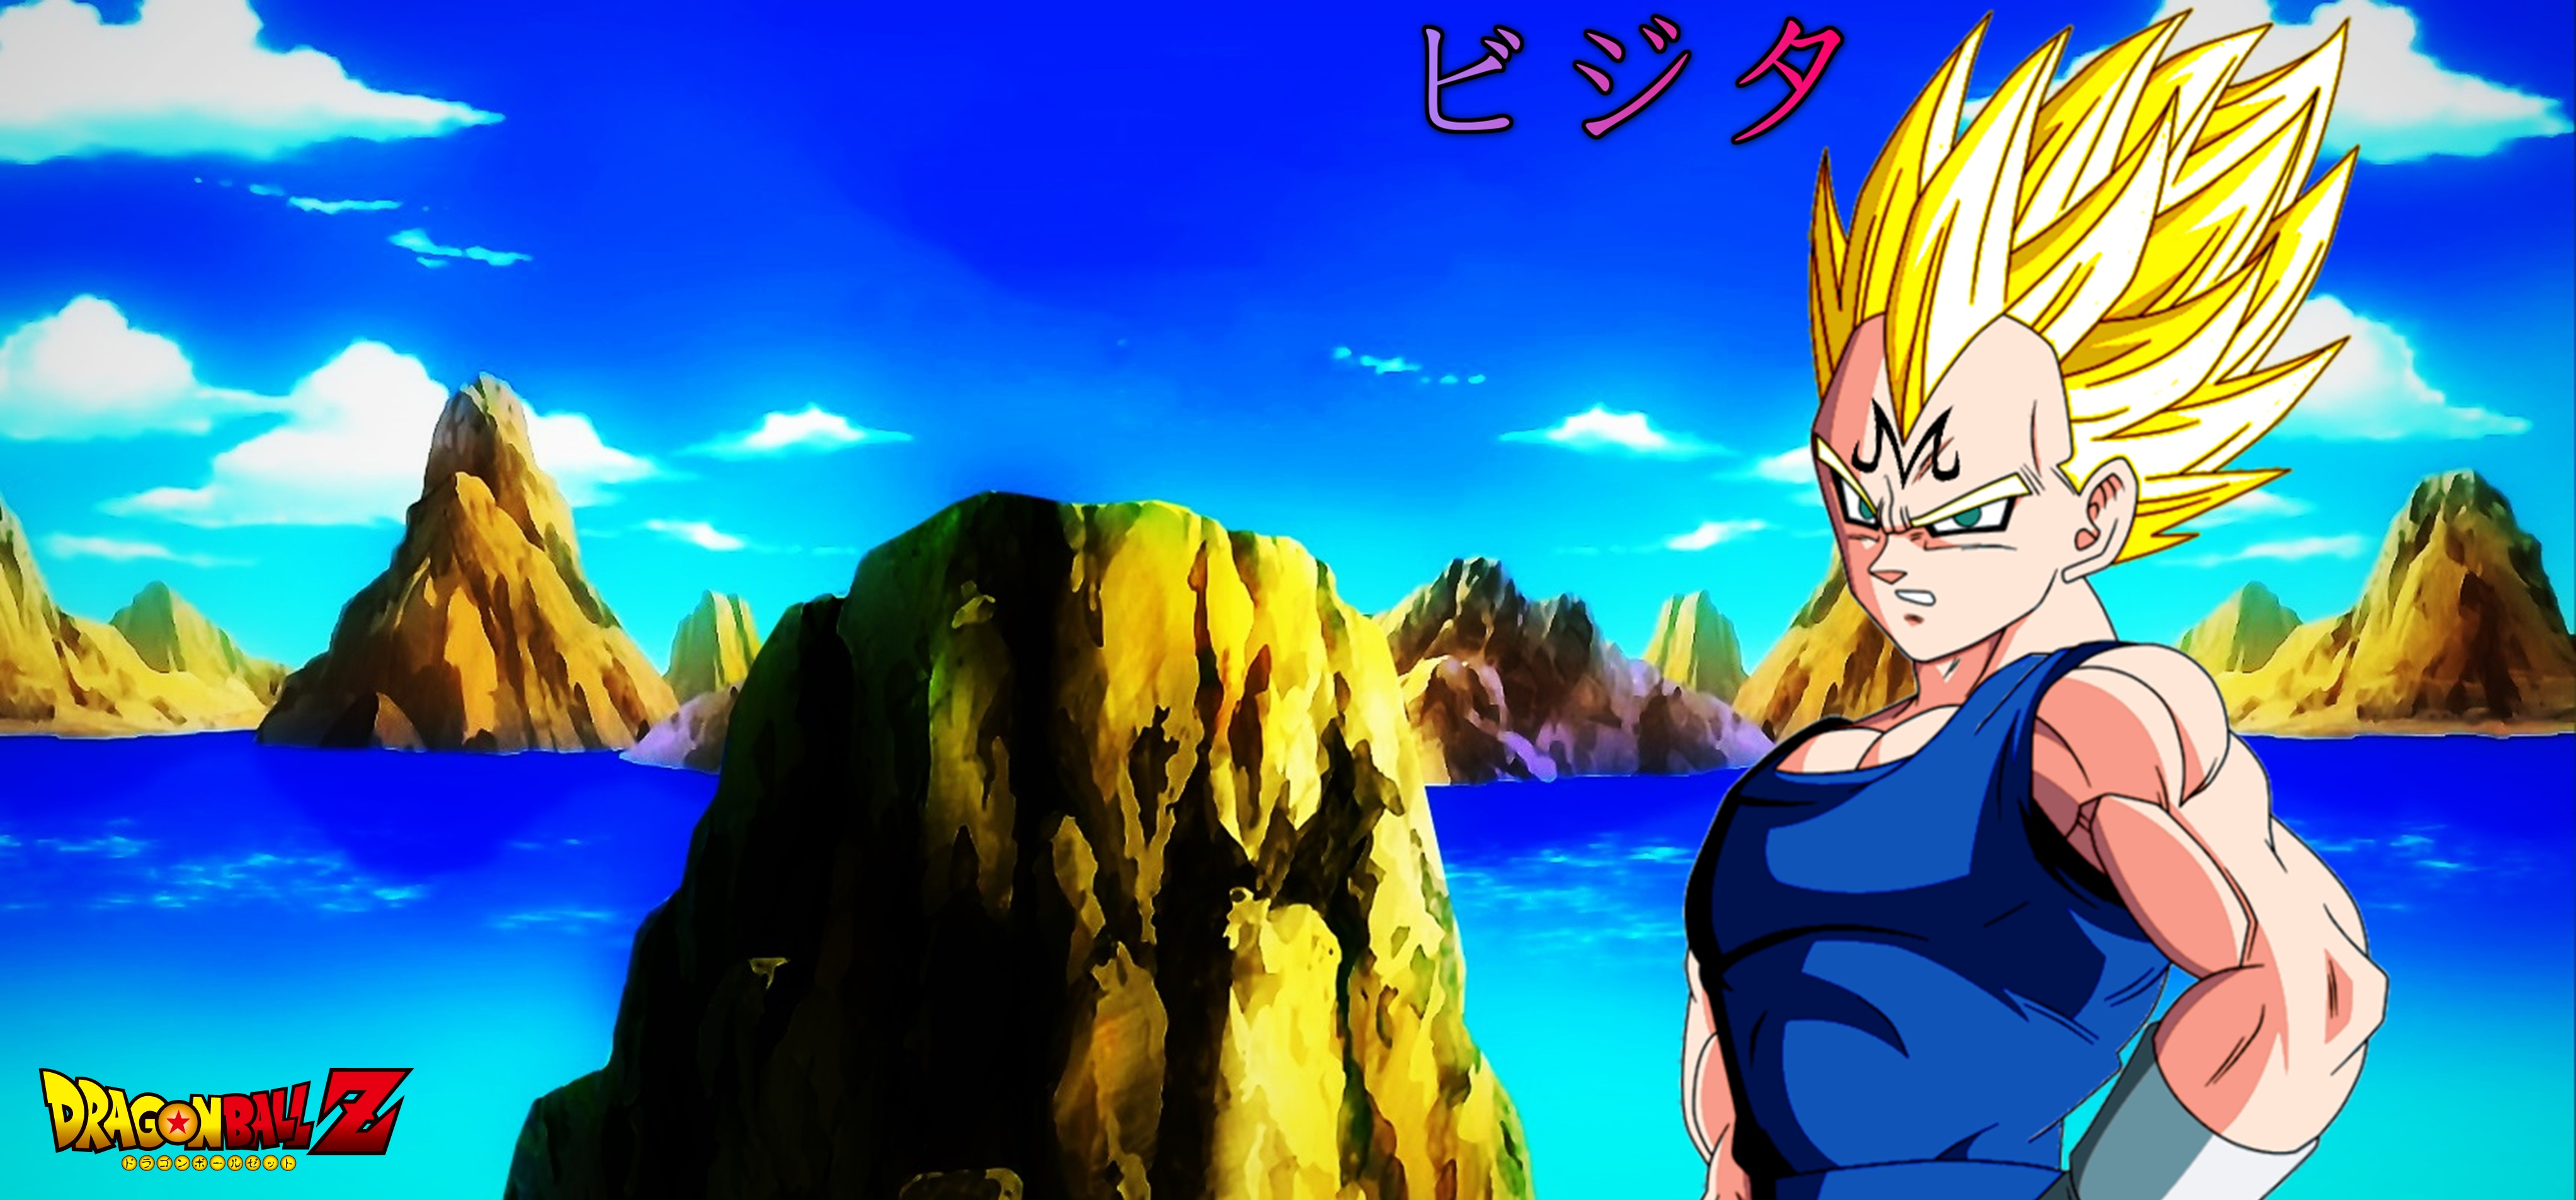 Goku Vs Majin Vegeta Wallpaper Download